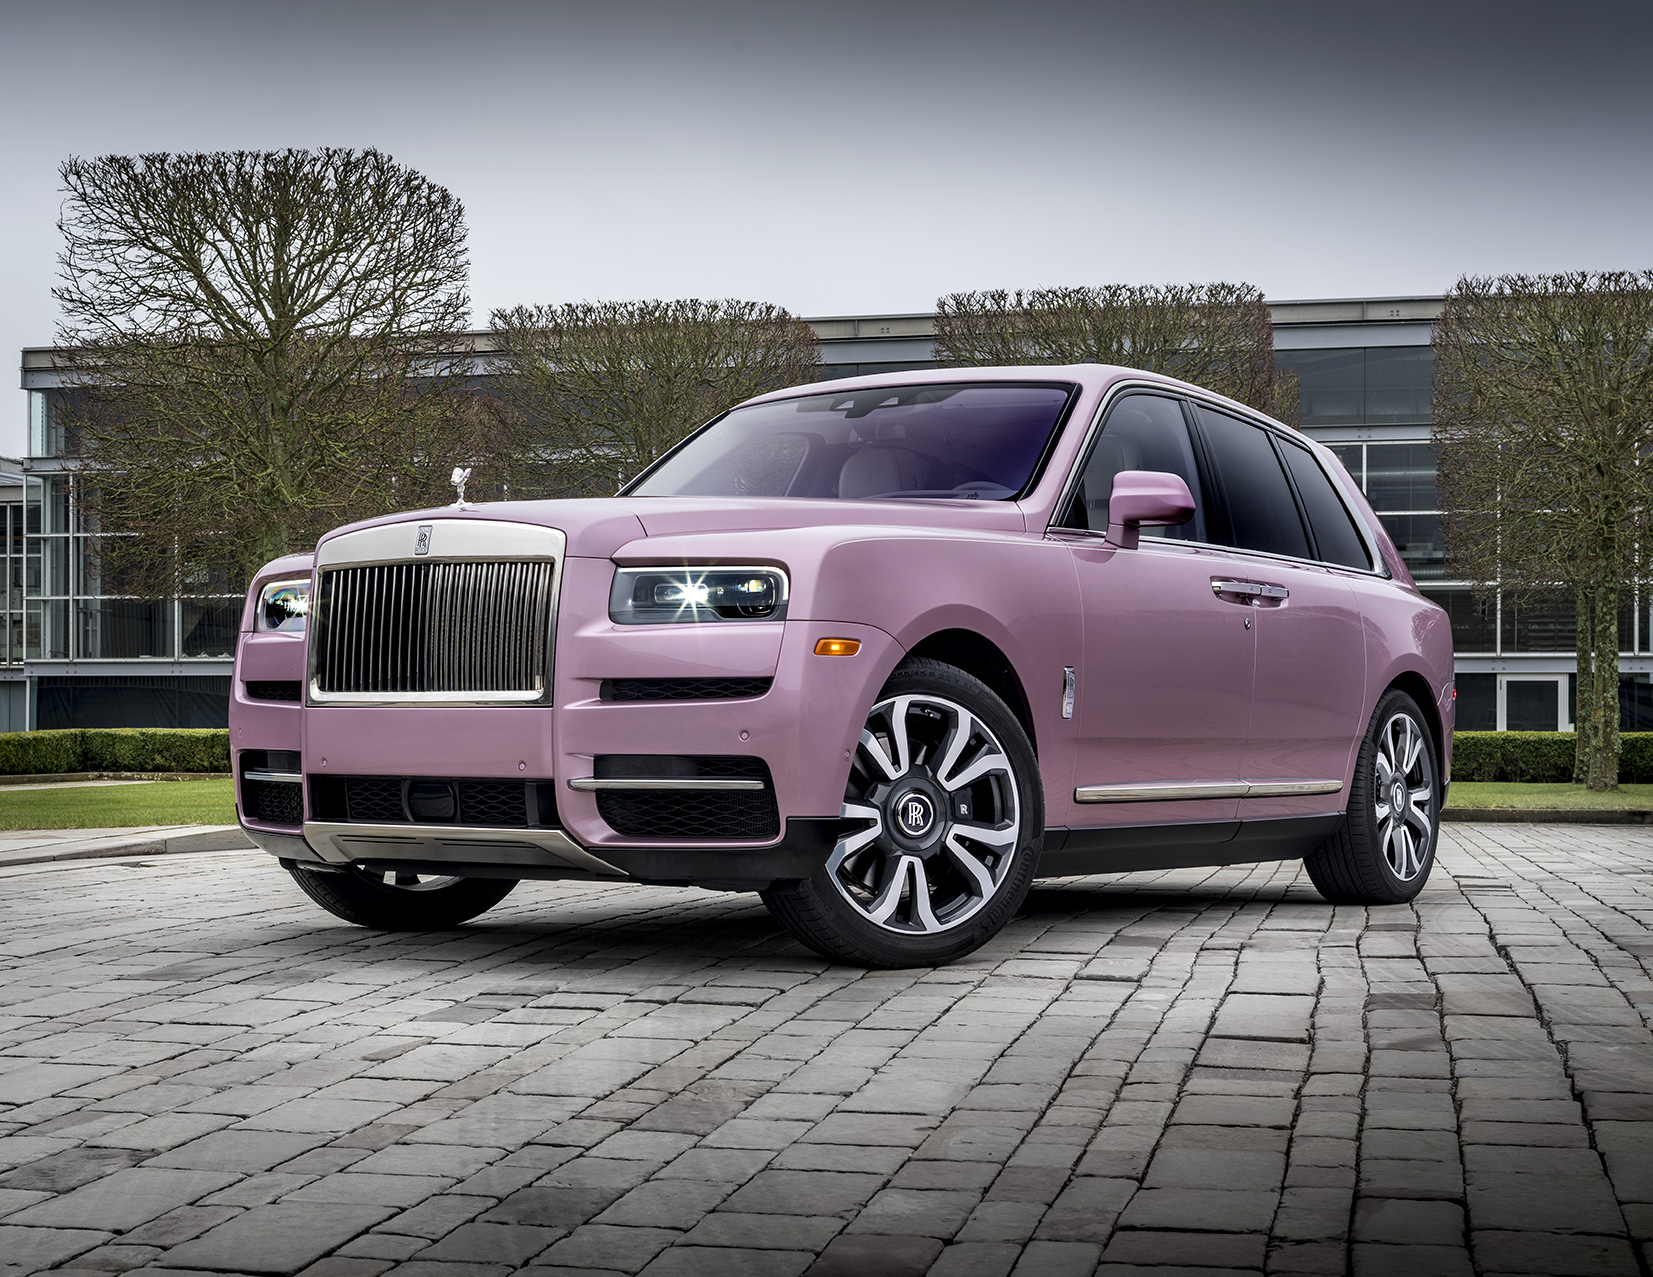 Passion Pink Cullinan Rolls Royce Beverly Hills O Gara Collective